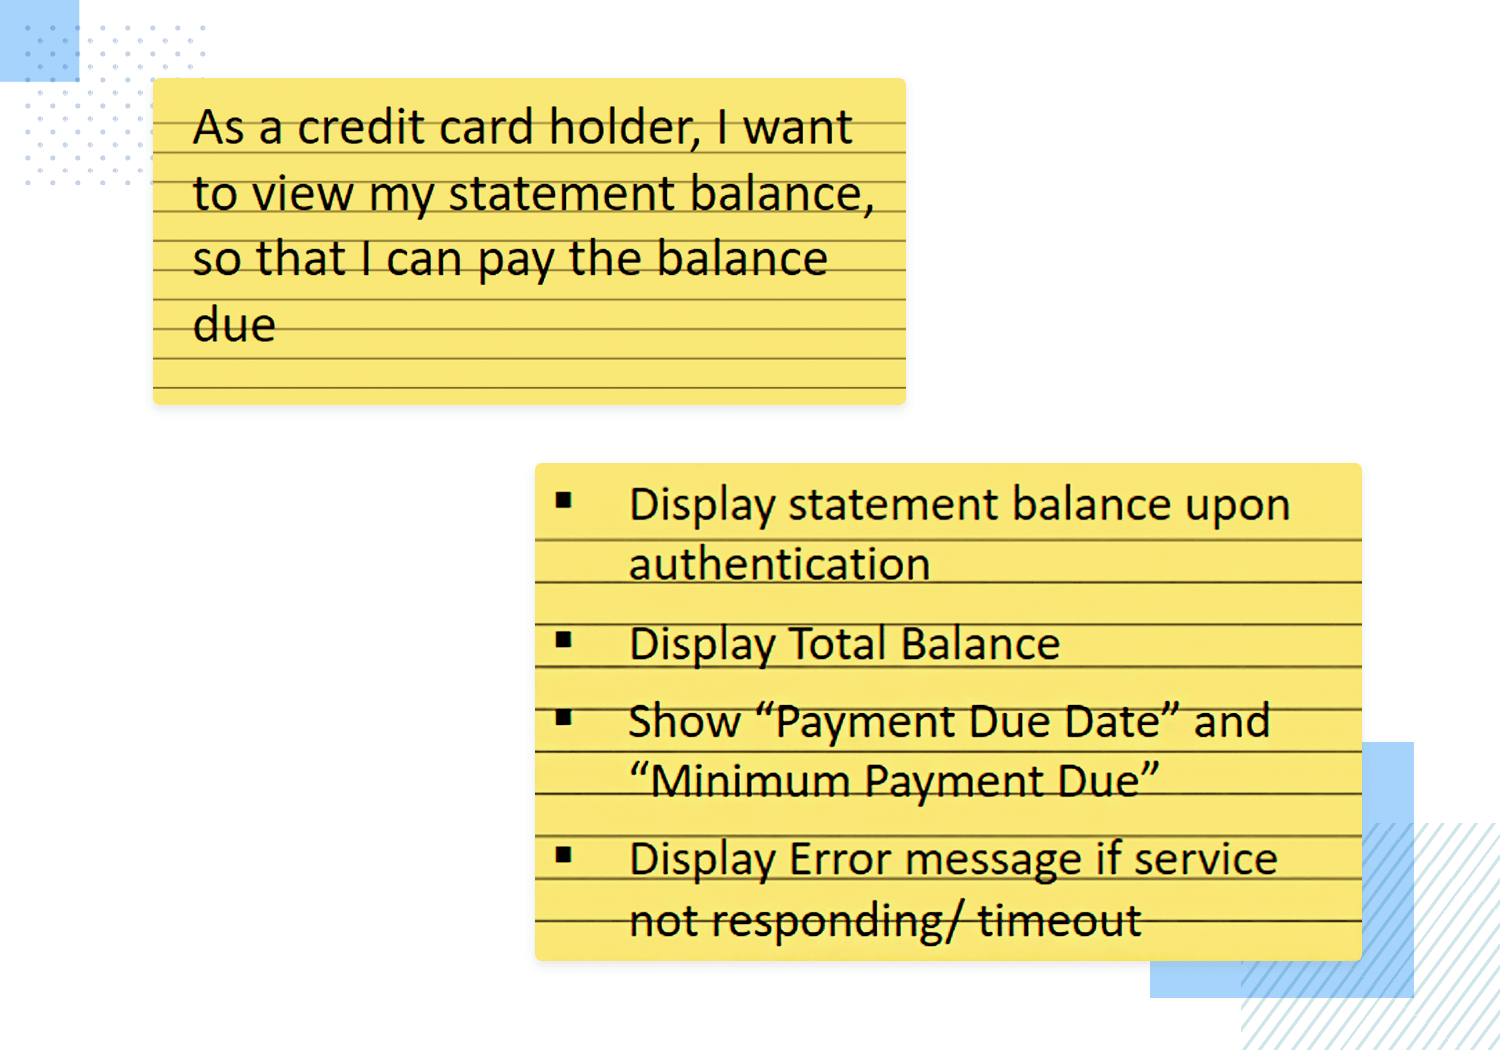 Banking app user story example